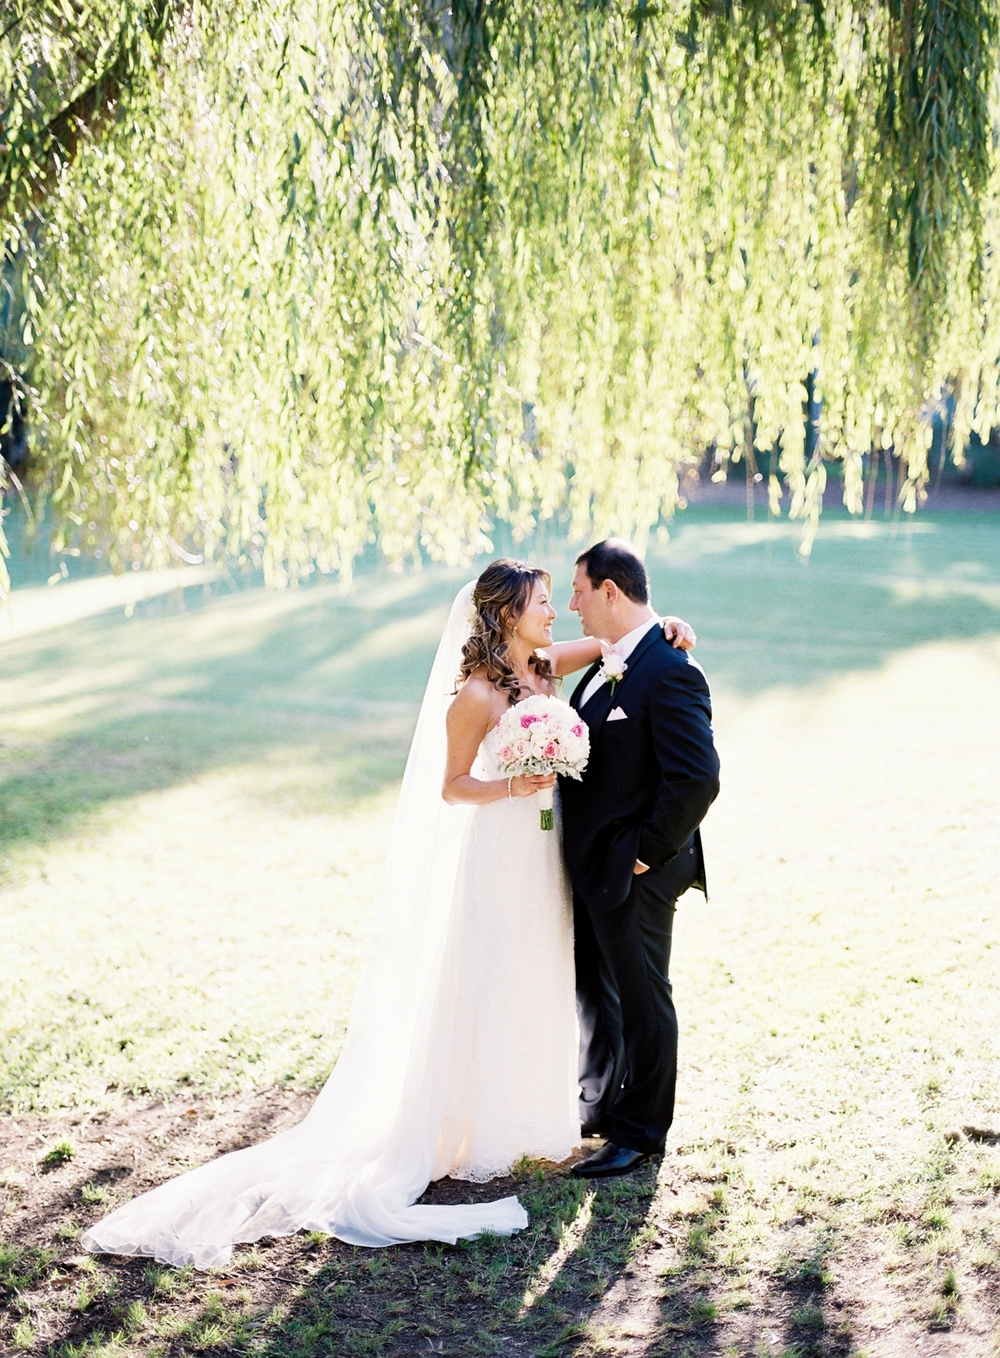 The Vine Grove Mudgee Wedding, Photography by Mr Edwards_1994.jpg